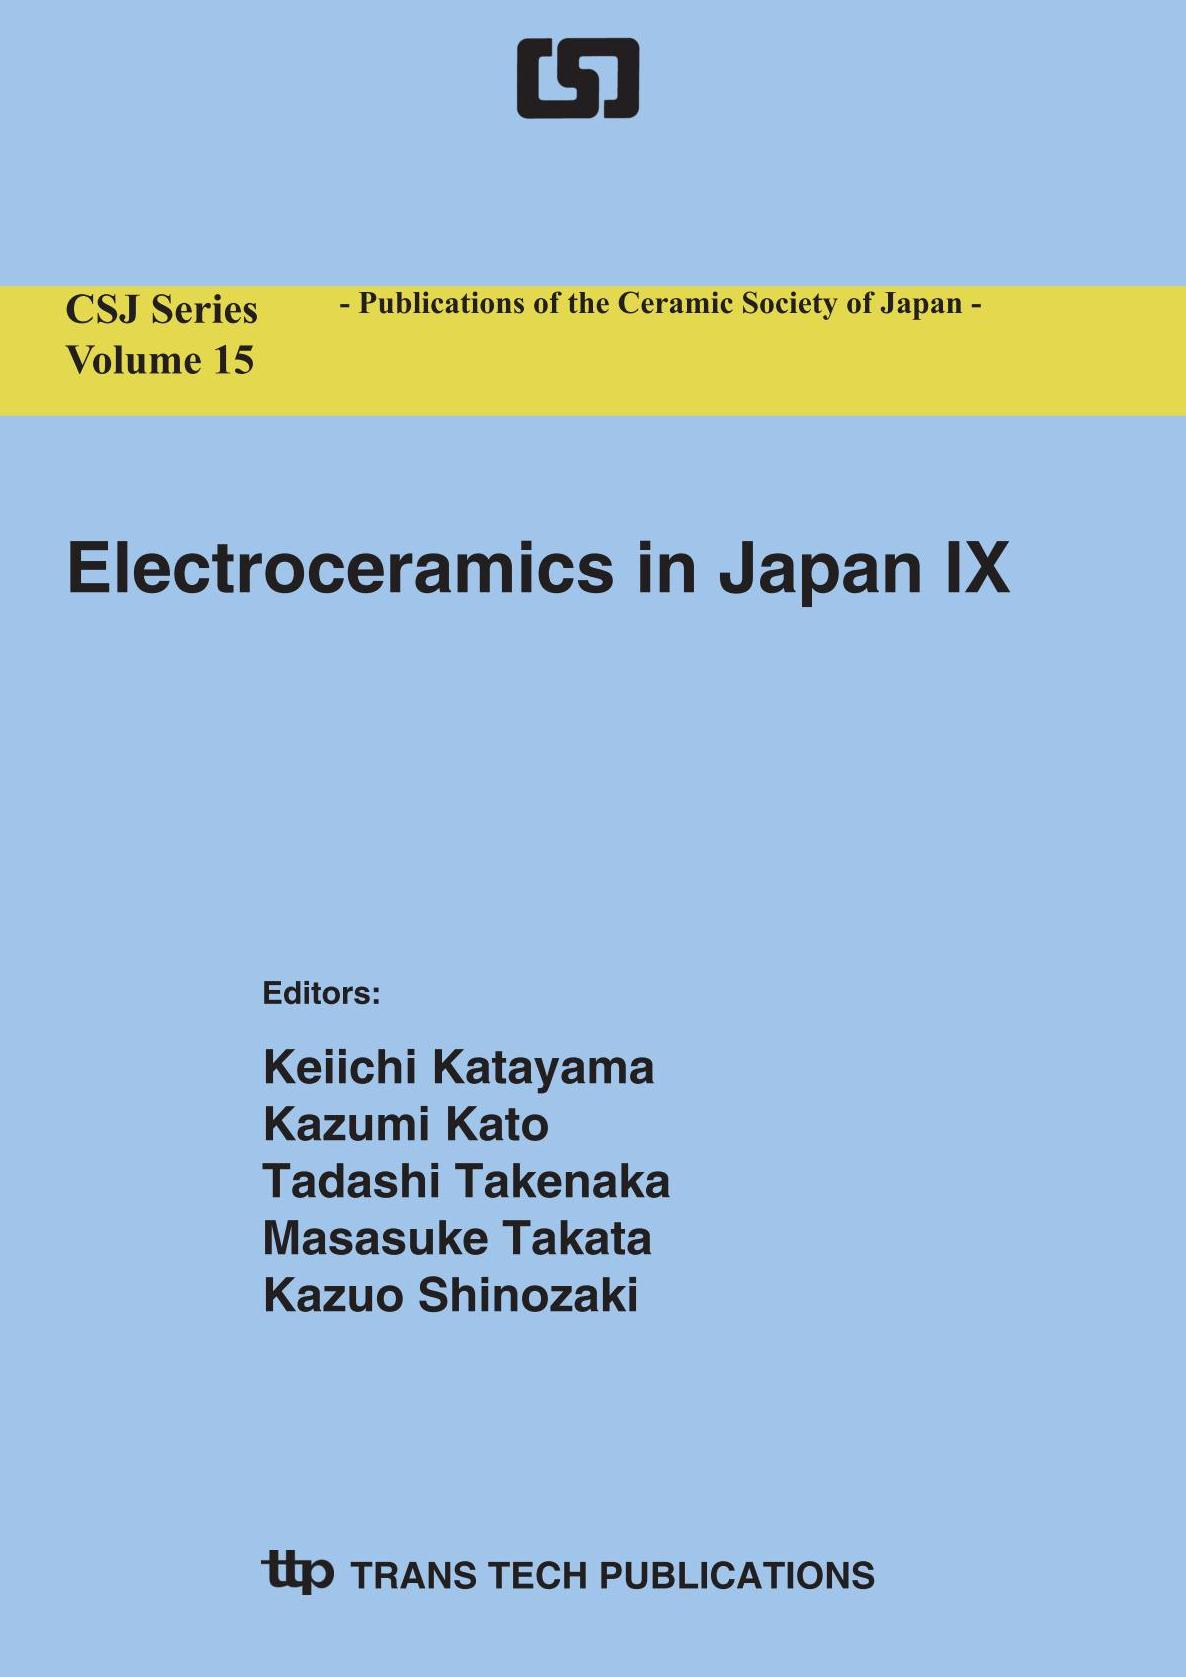 Electroceramics in Japan IX